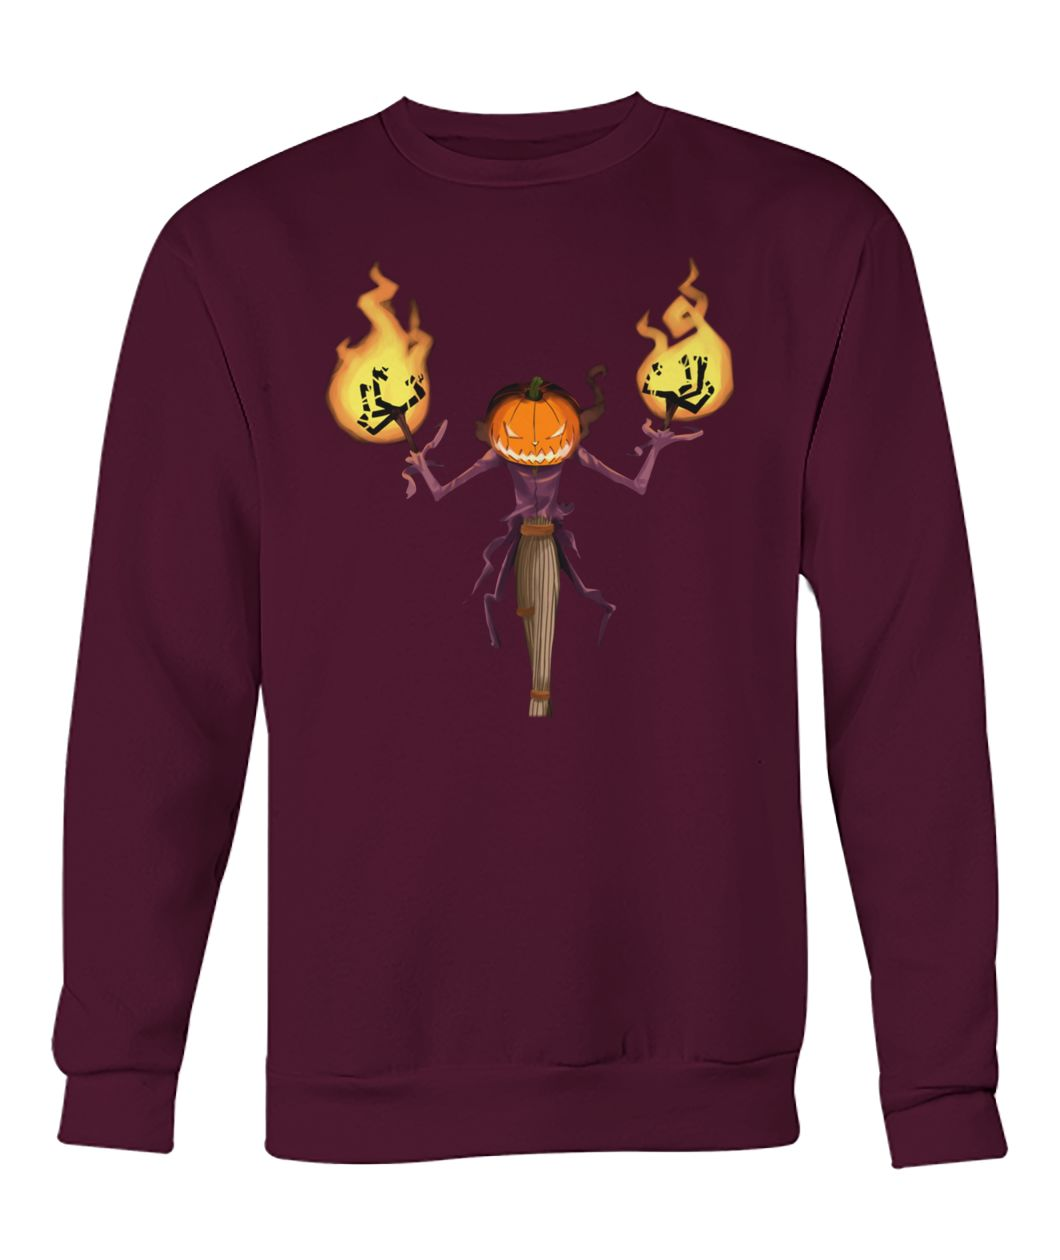 The Pumpkin King crew neck sweatshirt